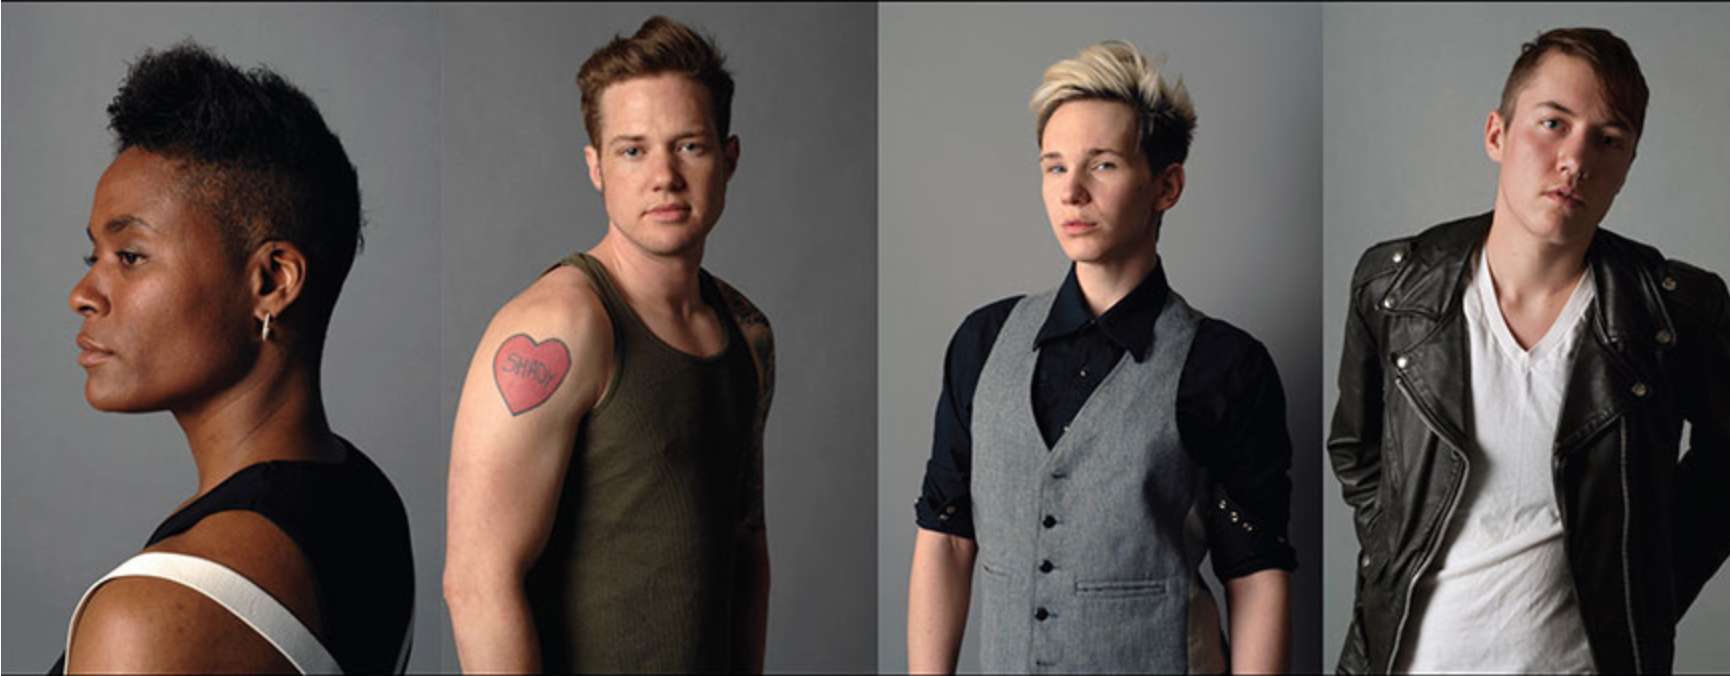 Images by David Naz from his Genderqueer project (via davenaz.com)